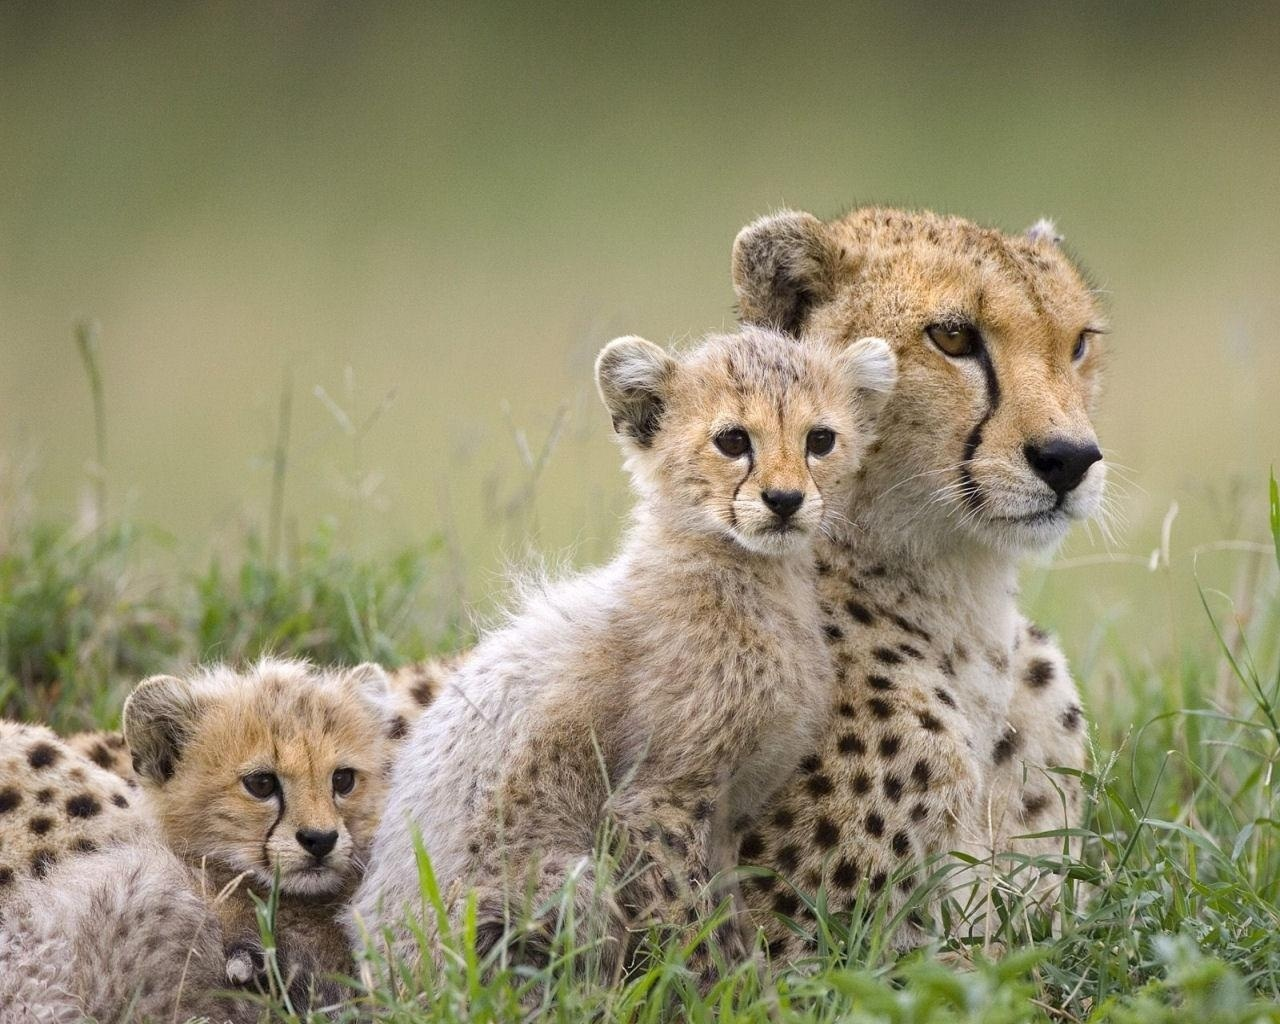 Pictures Of Wild Animals Cheetah Family wild animals